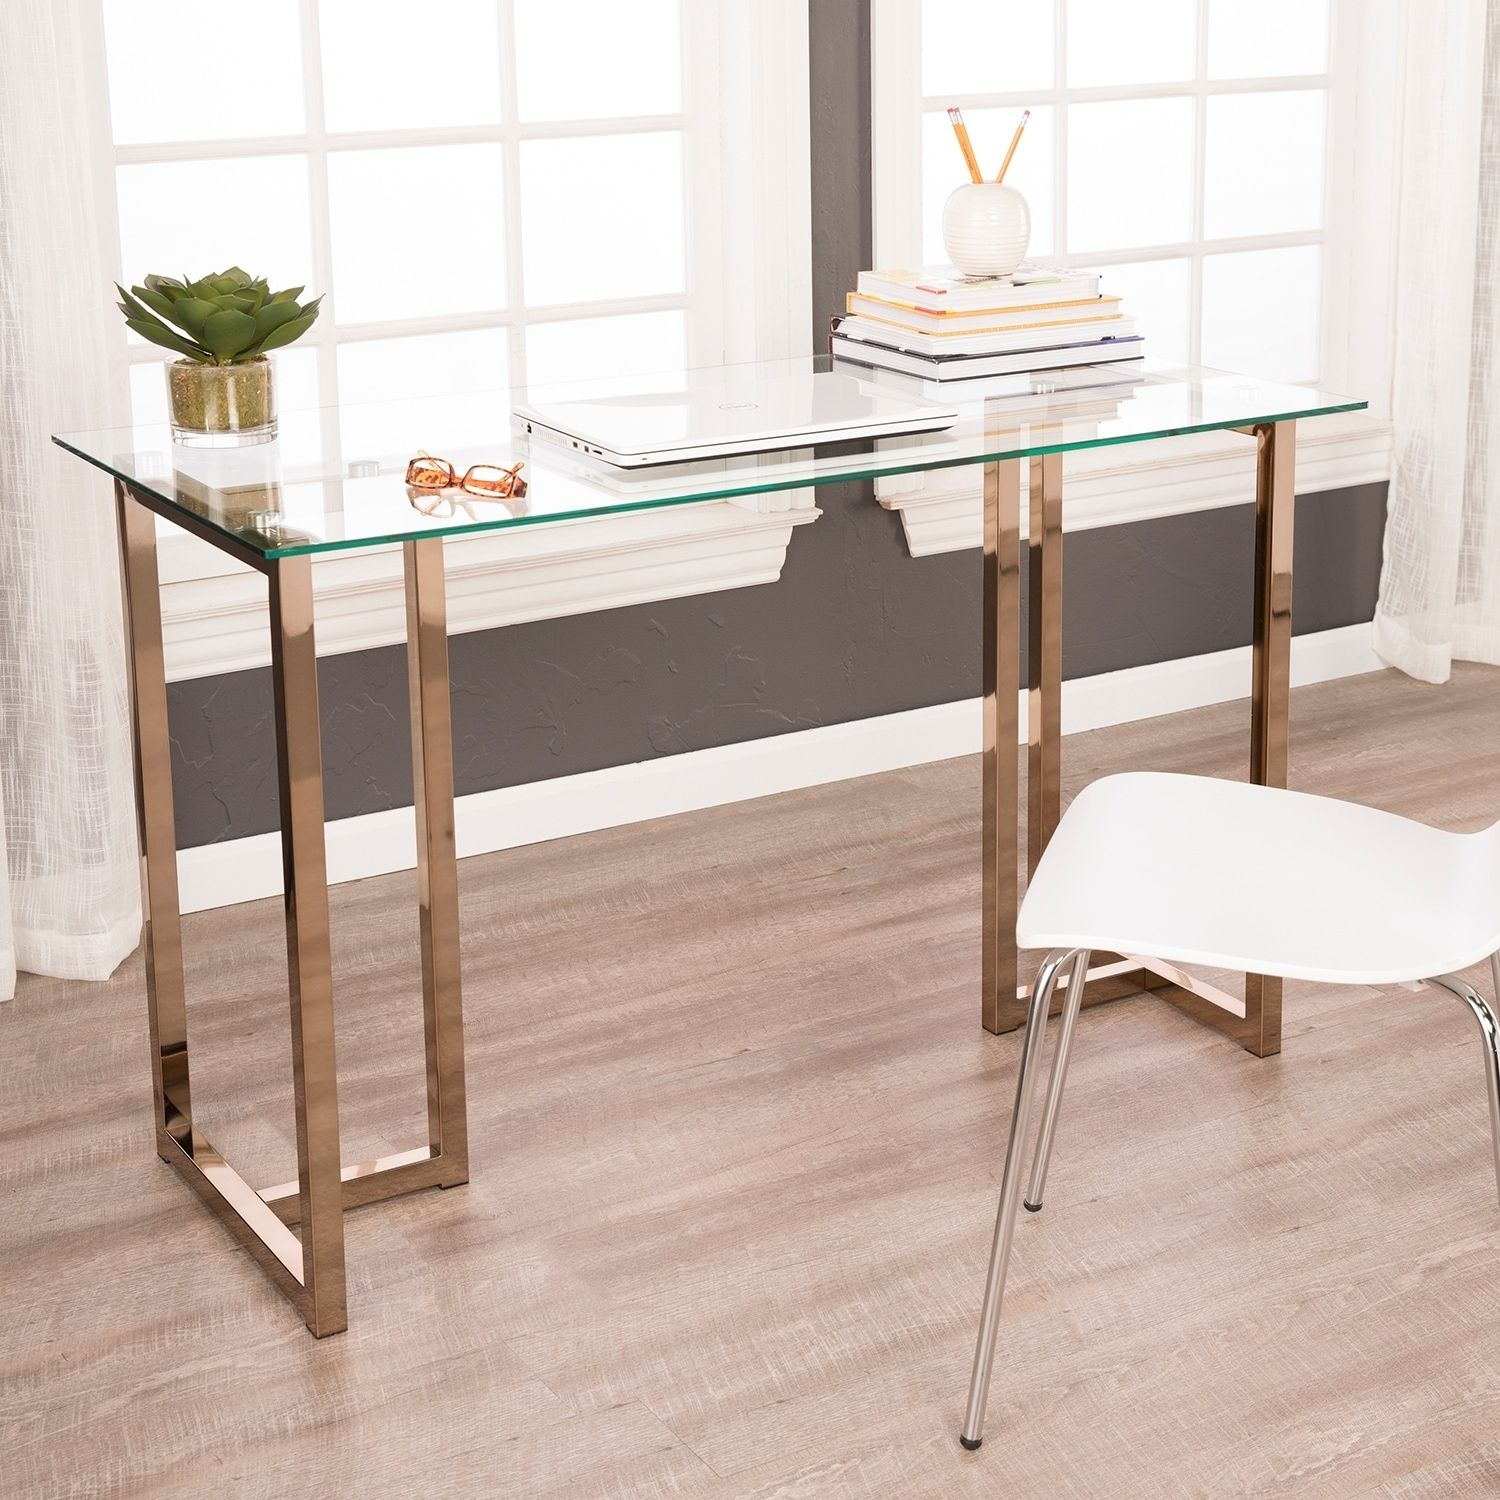 Our Best Home Office Furniture Deals Deals Furniture Glassofficedeskmodern Home Office In 2020 Home Office Furniture Glass Desk Furniture